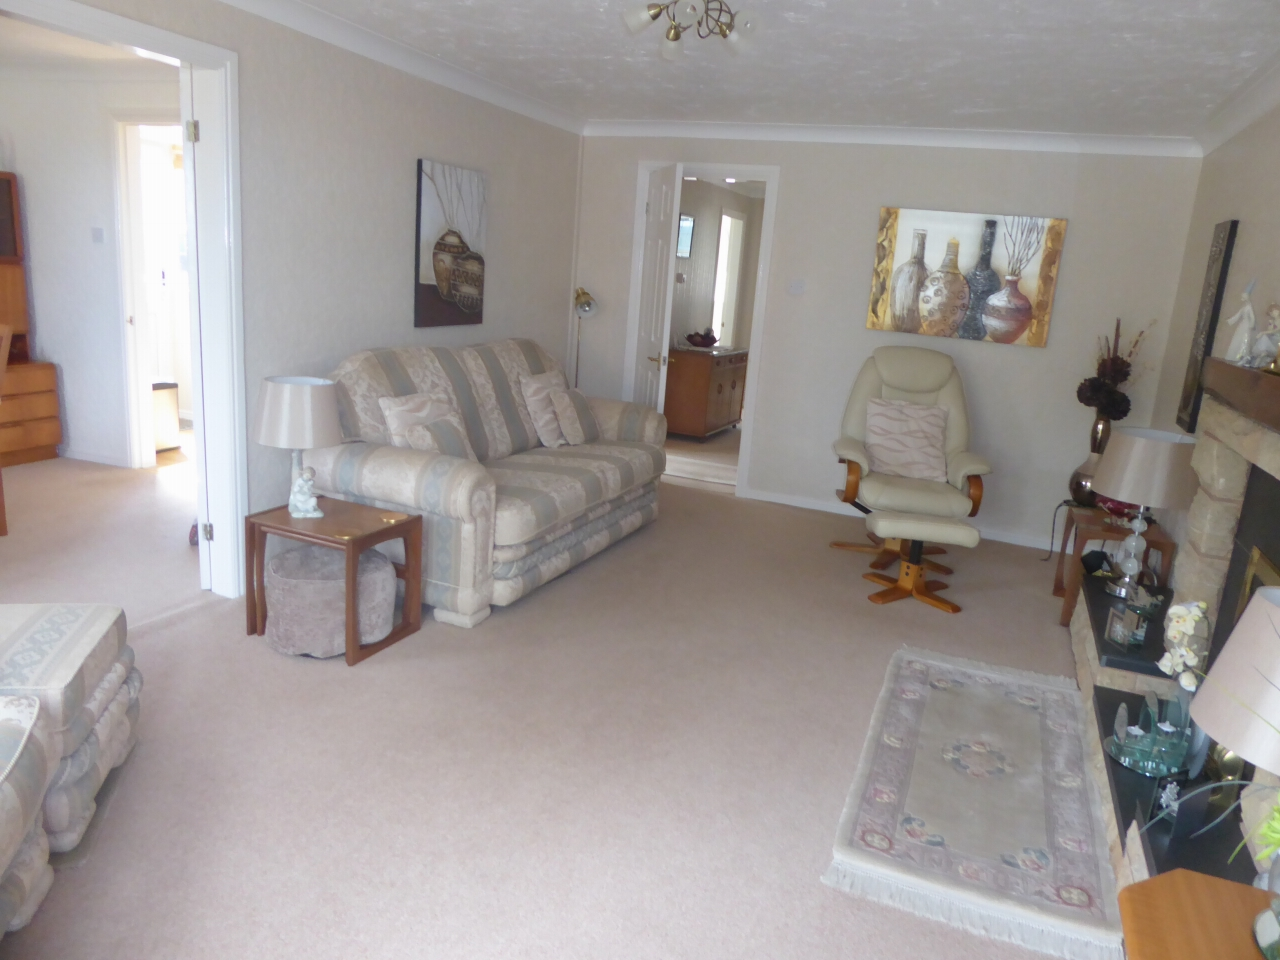 3 bedroom detached bungalow SSTC in Abergele - Photograph 3